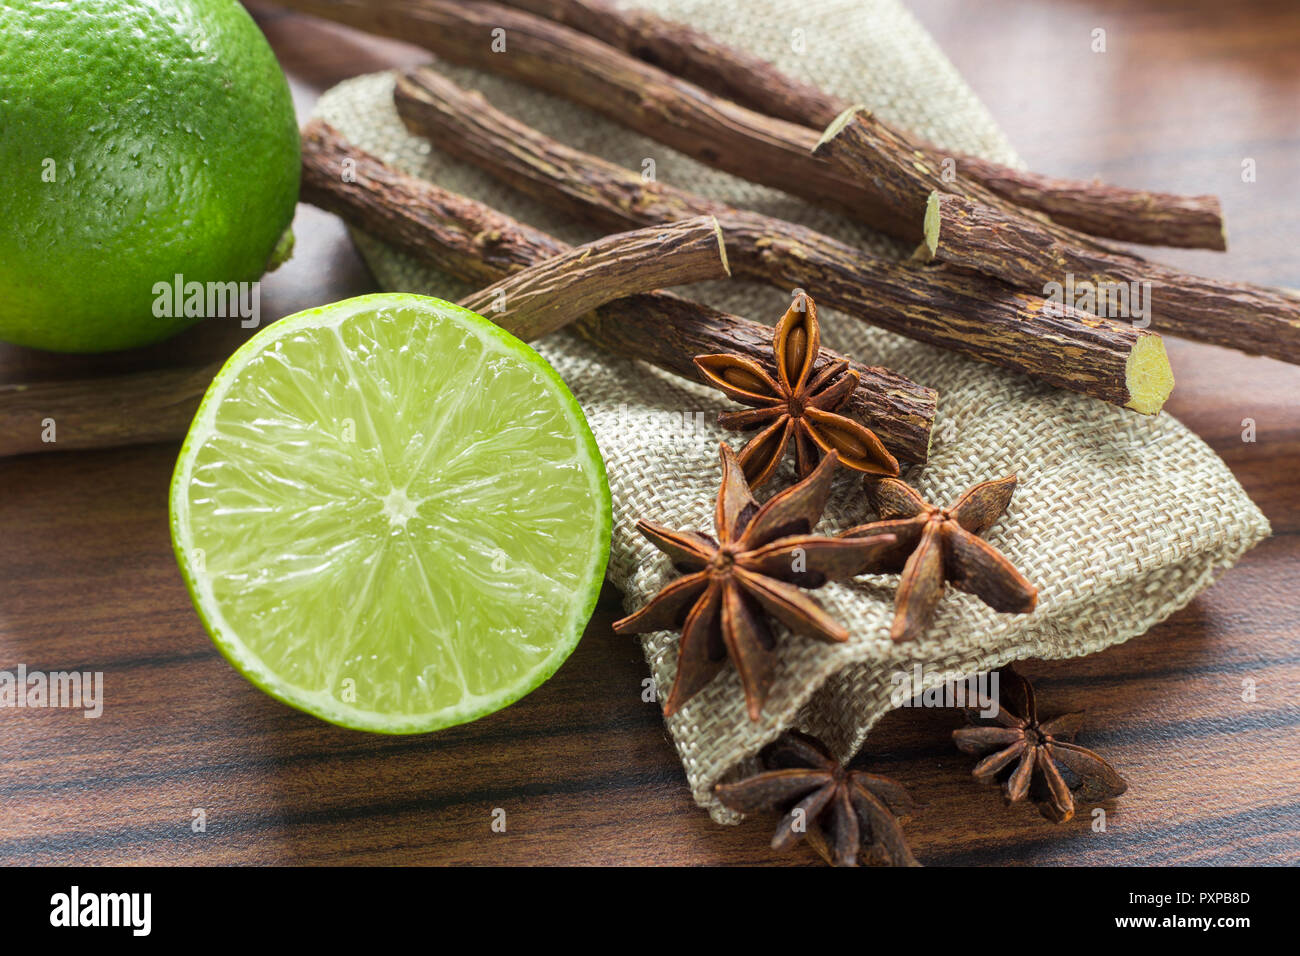 licorice root, lemon and anise on the table. - Stock Image